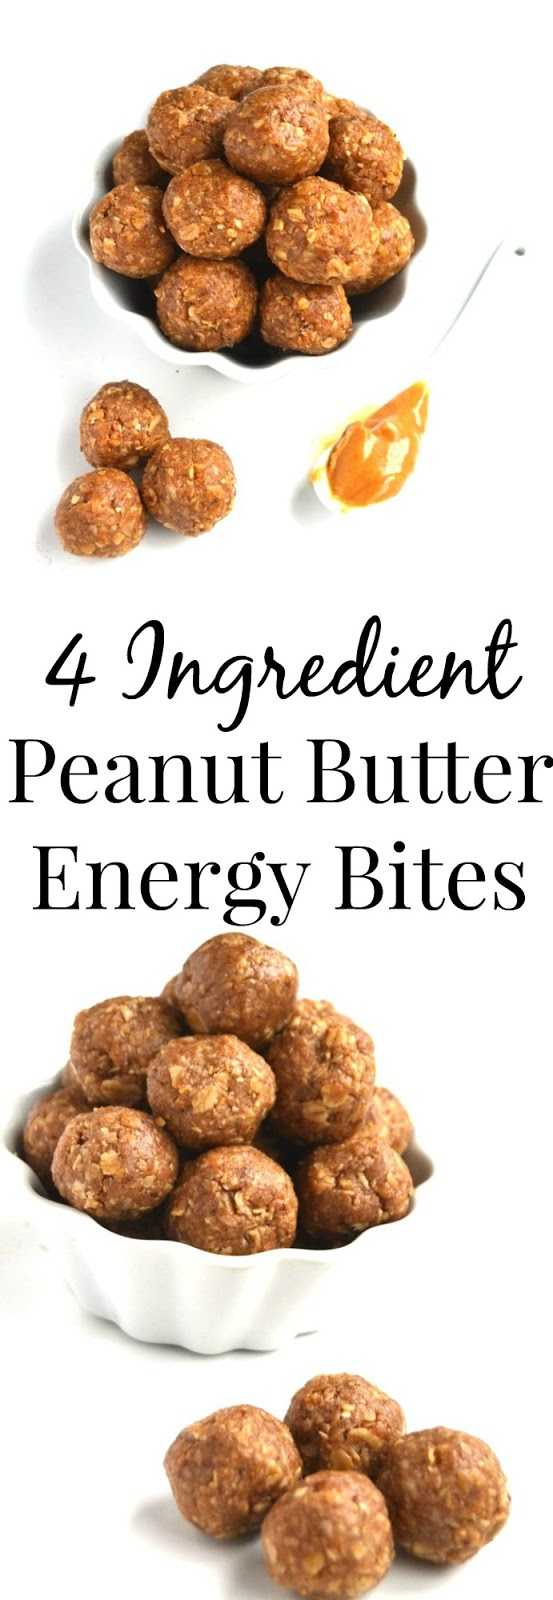 4 Ingredient Peanut Butter Energy Bites are easy to make with ingredients that you have on hand. They are rich in protein and make a perfect healthy snack. www.nutritionistreviews.com